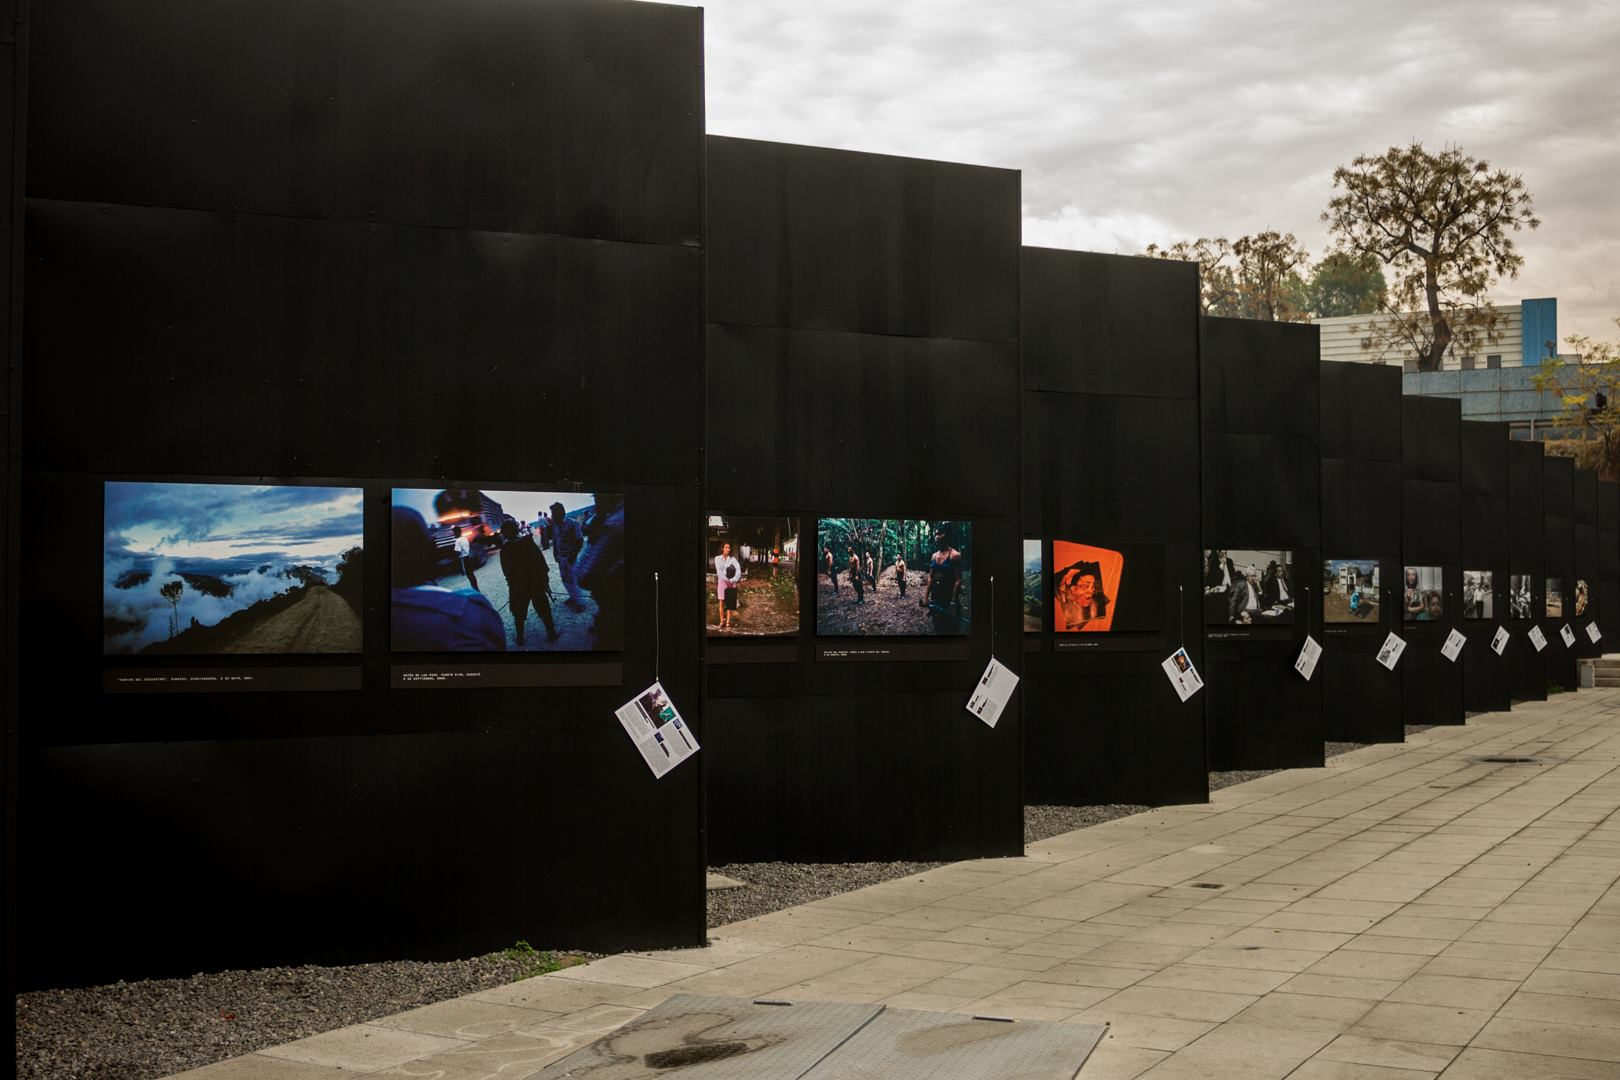 Exhibition of Violentology in Museum of Memory and Human Rights in Chile